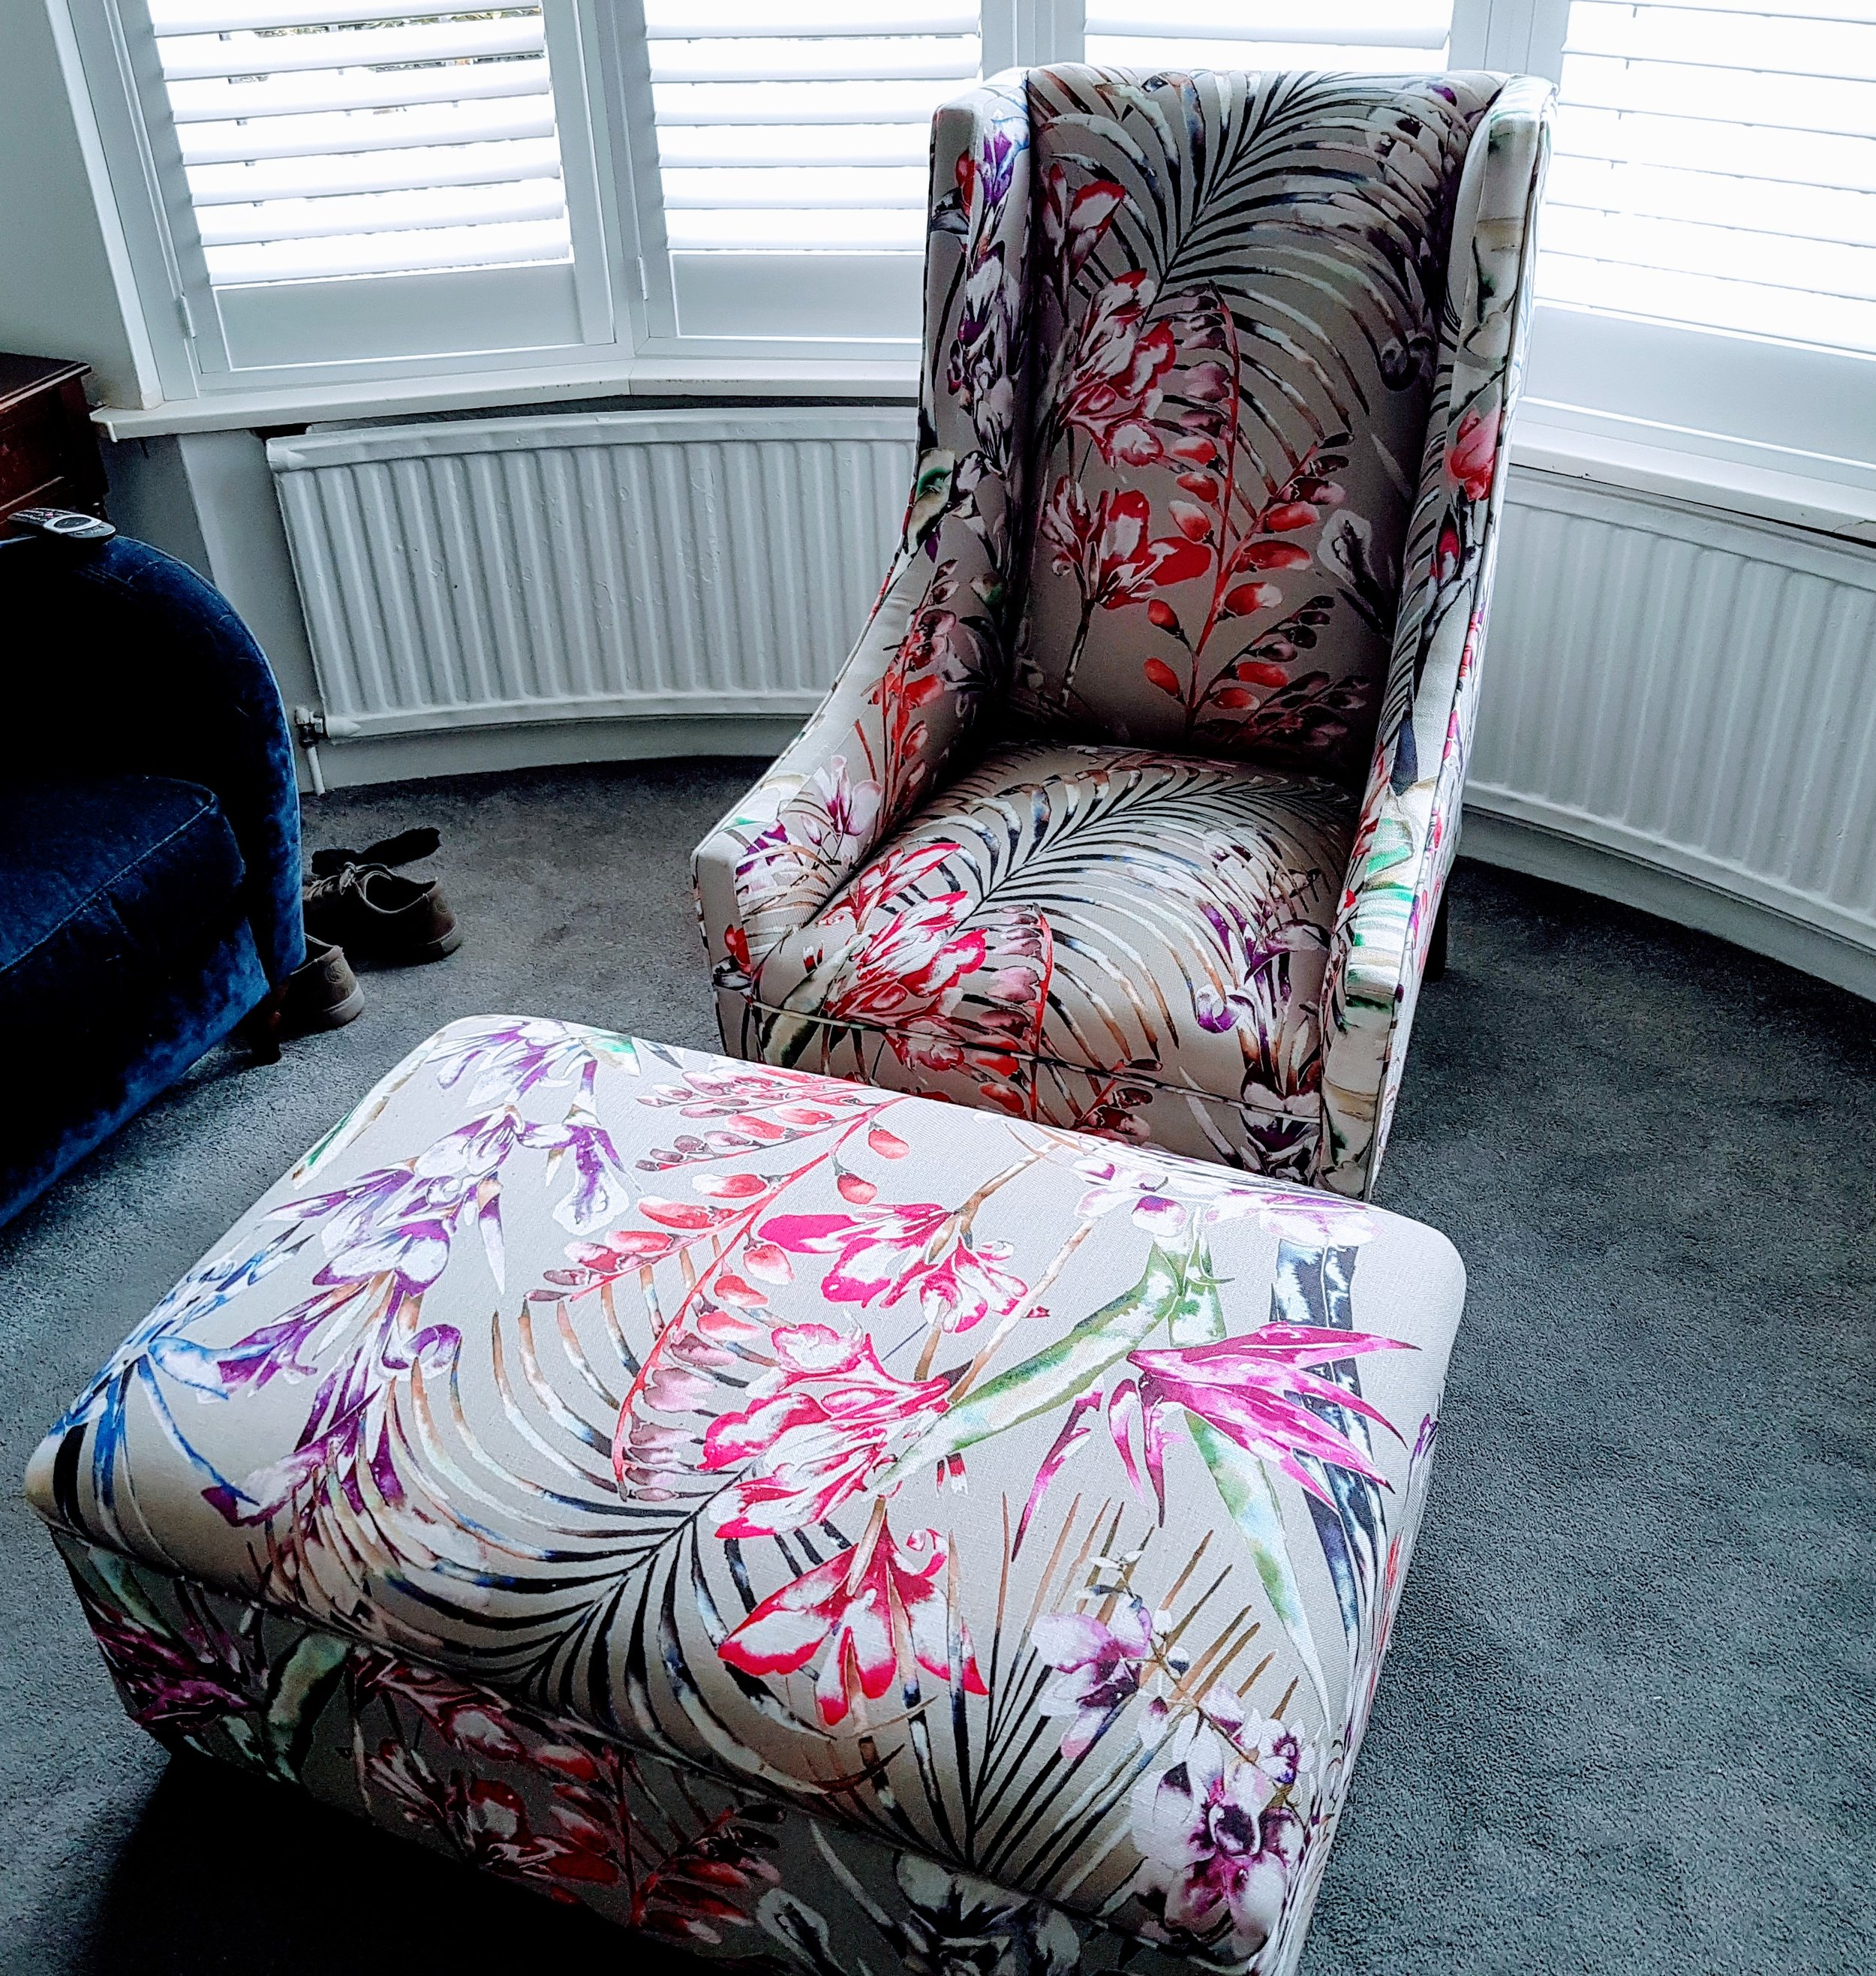 Antique Chair with Footstool - After